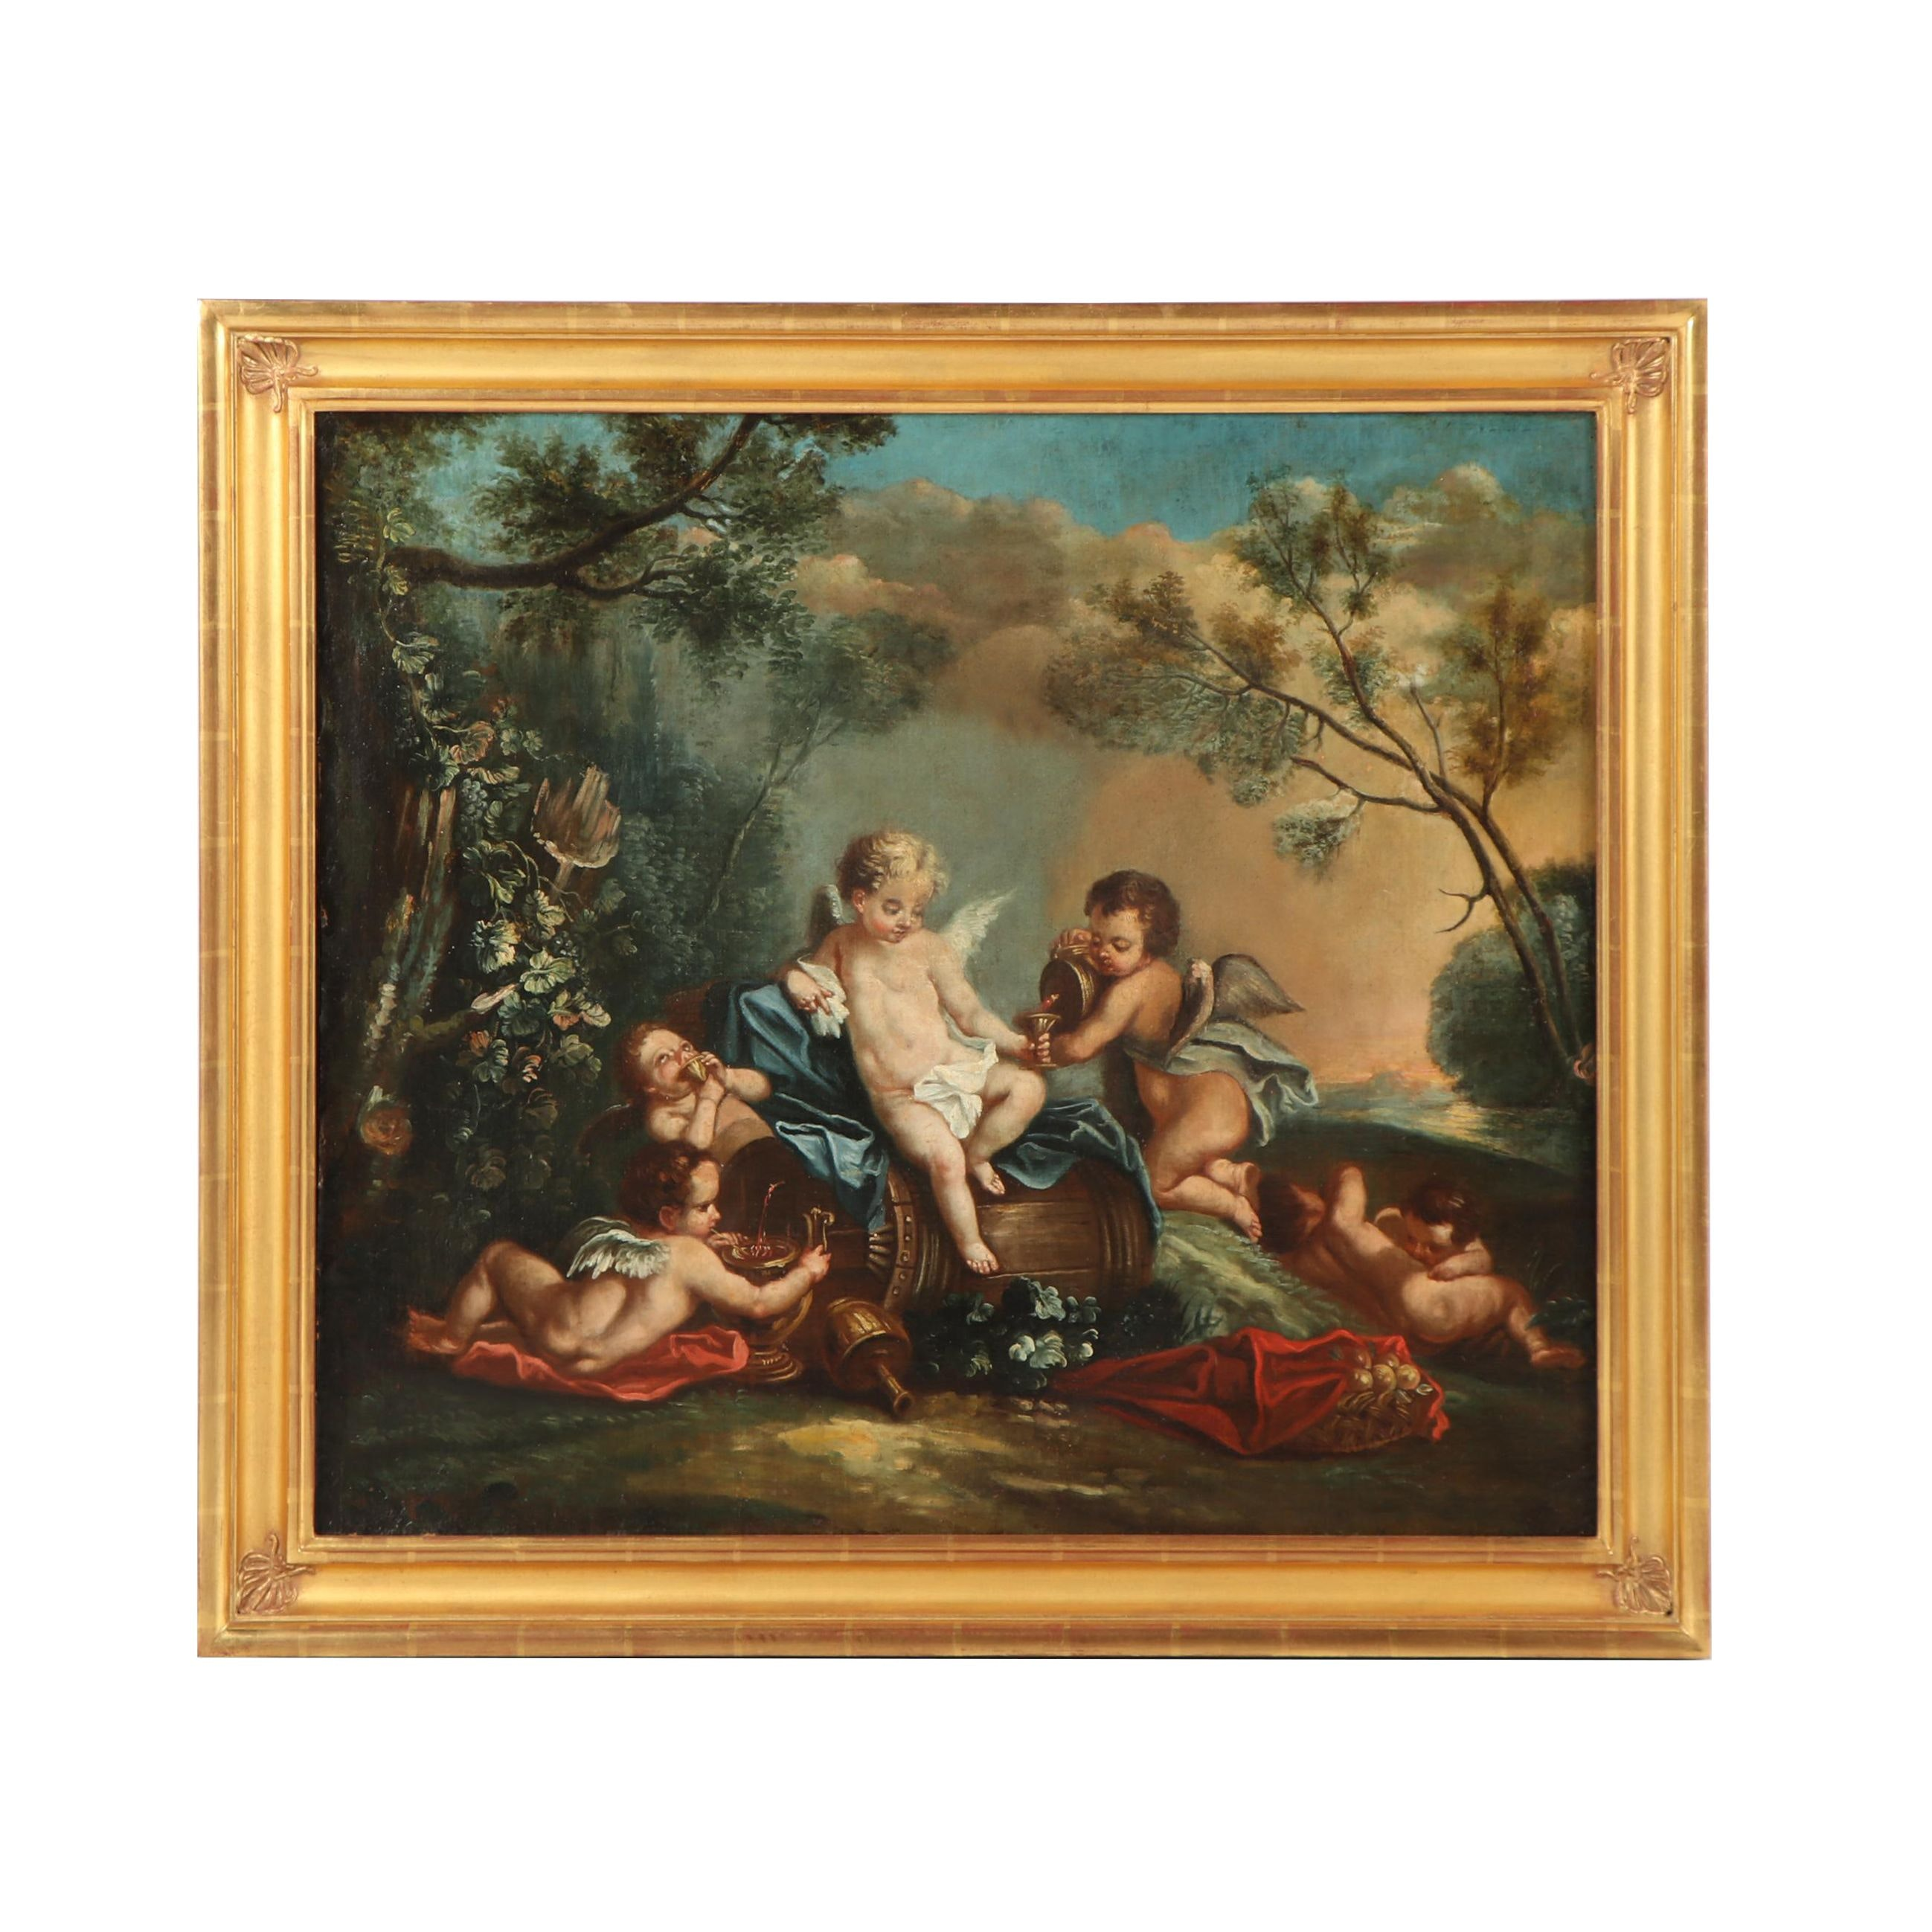 19 Century Allegorical Oil Painting